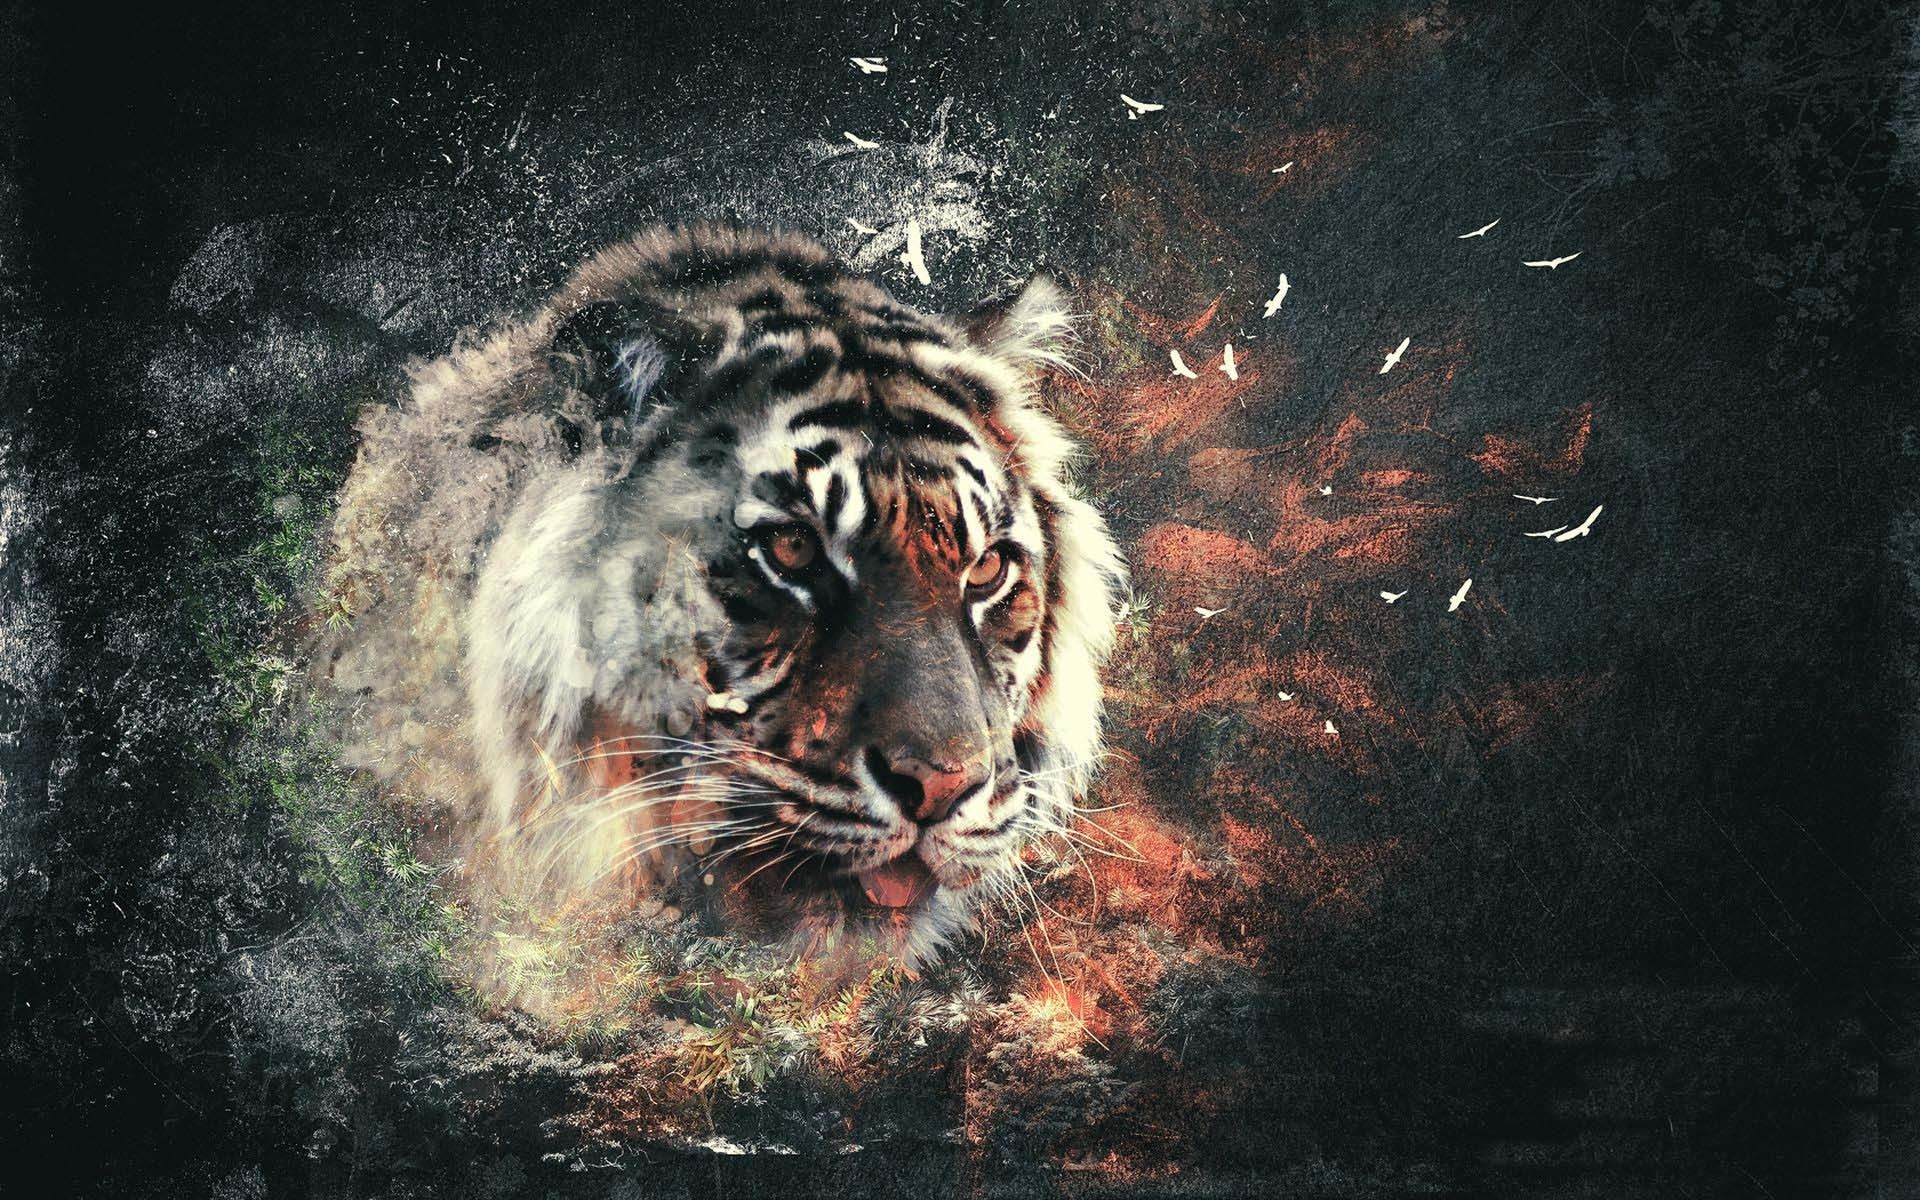 Tiger Wallpaper 3d Hd Resolution Free Download Tiger Wallpaper